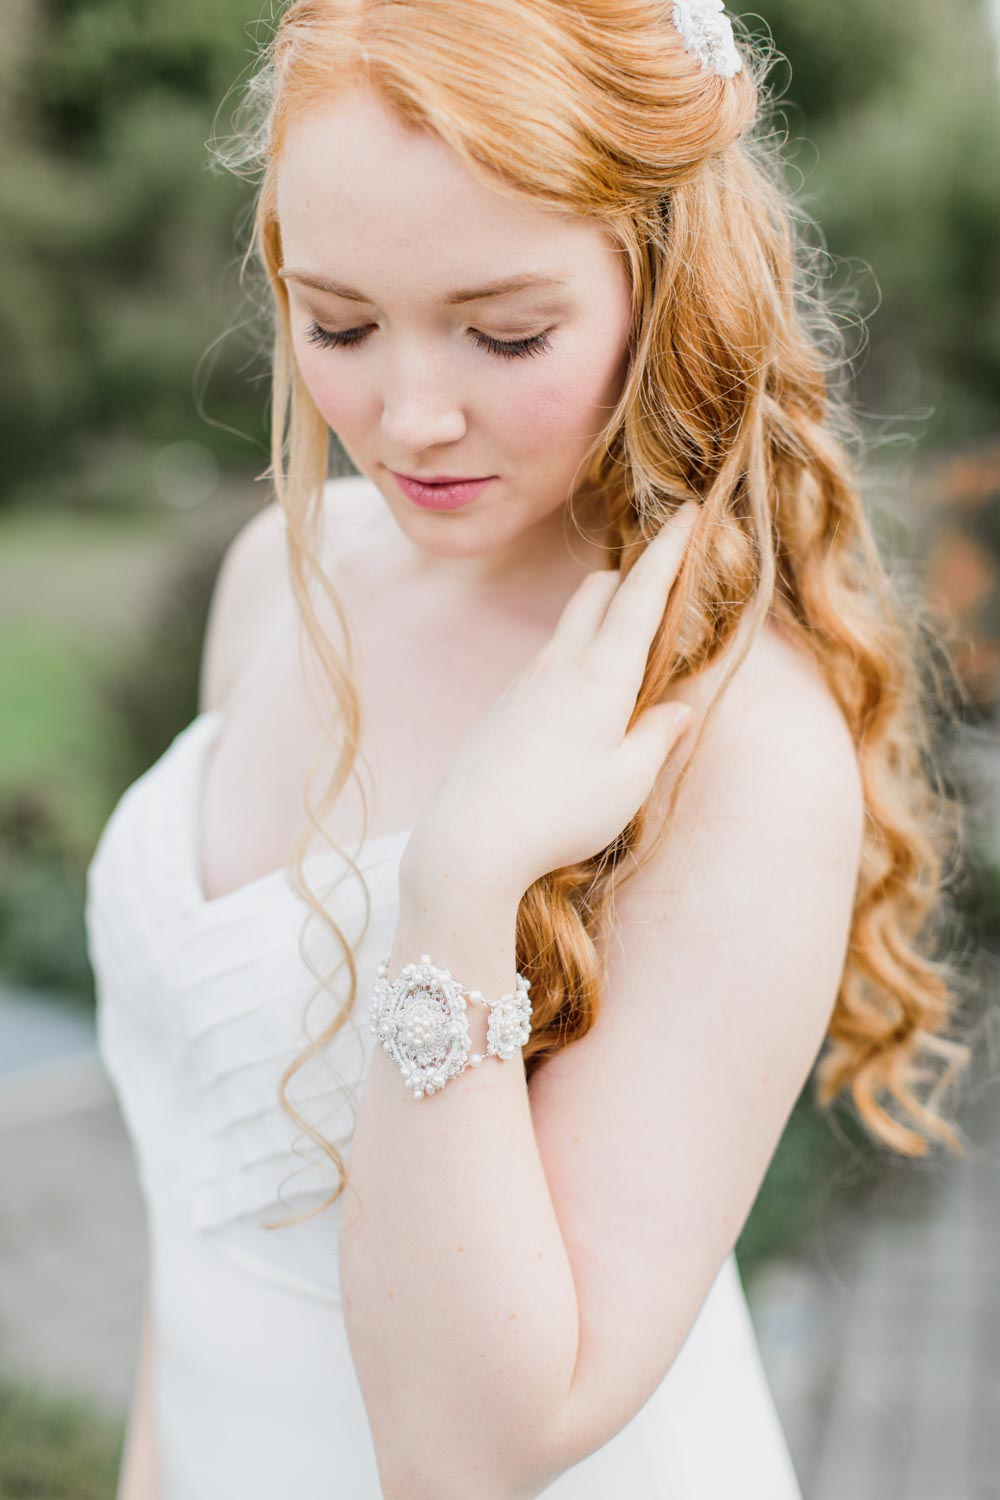 Bridal Bracelets | Wedding Cuffs | Handmade Wedding Jewelry